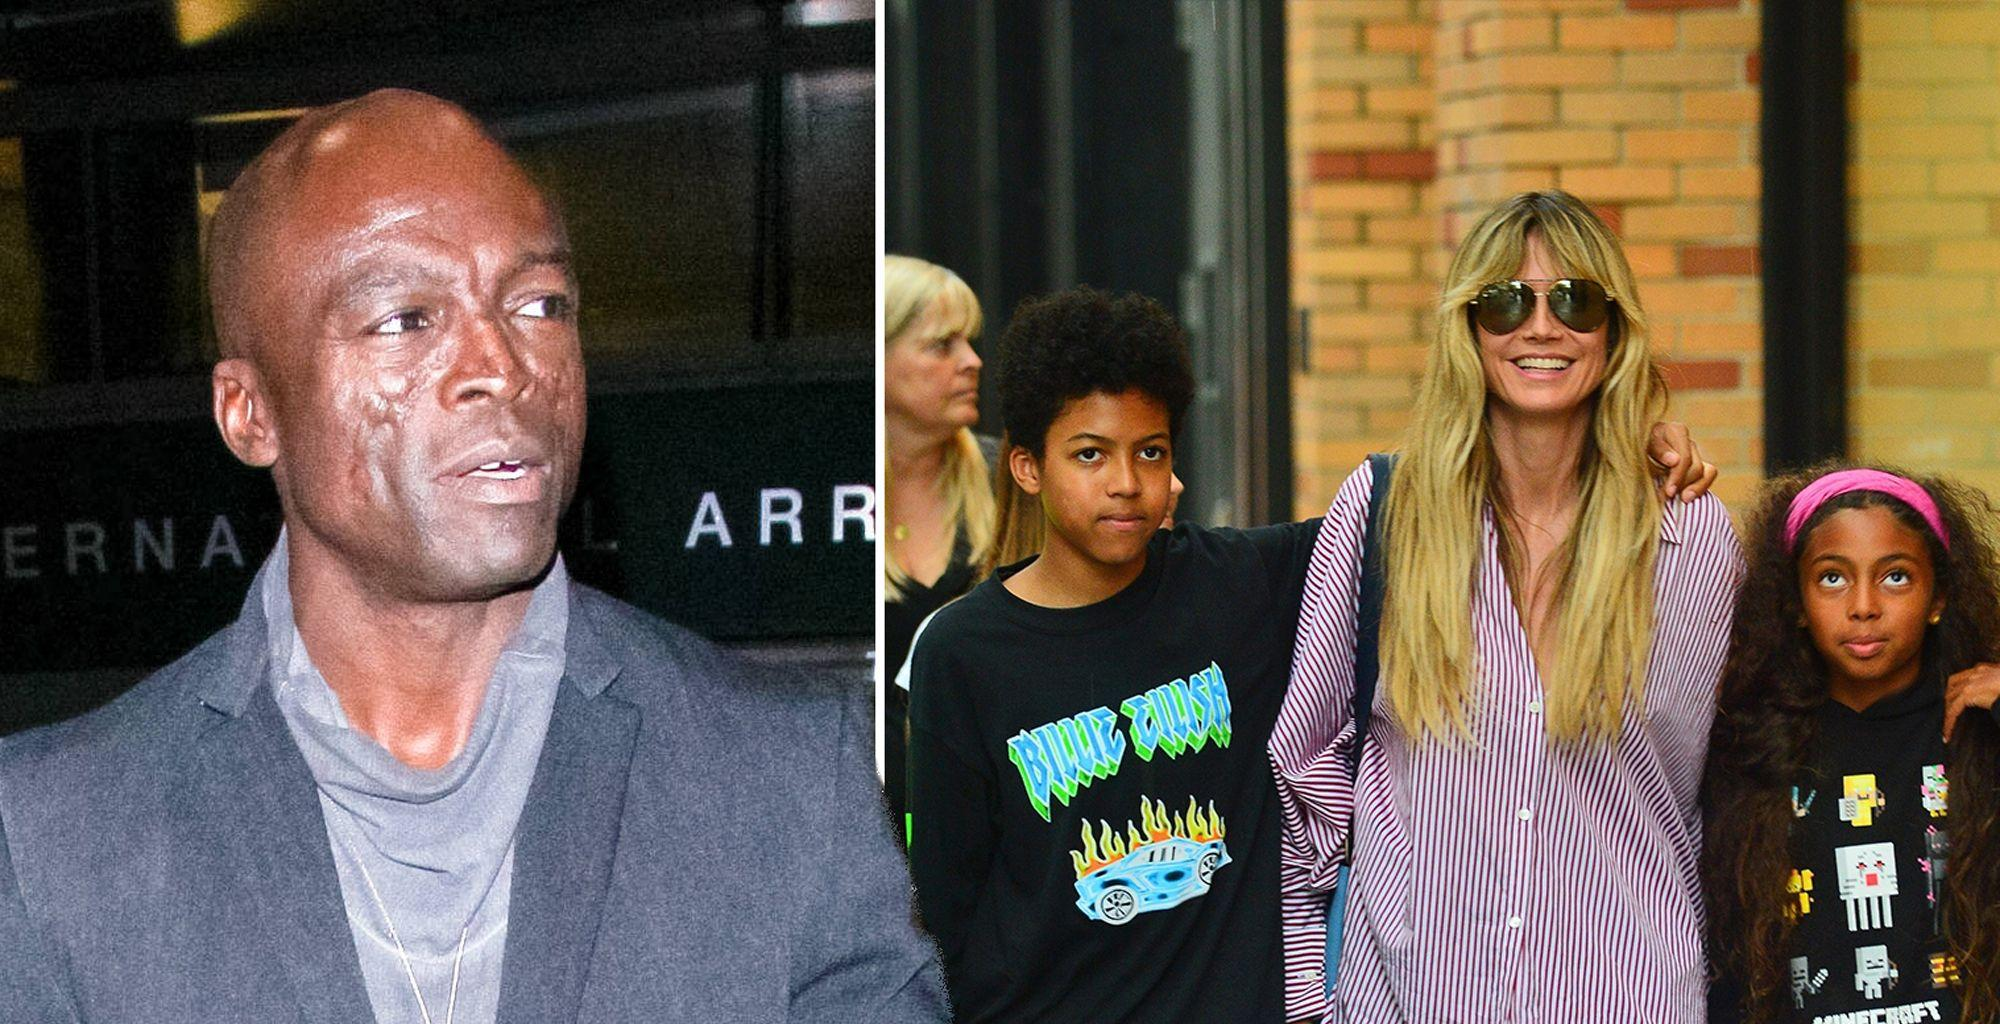 Heidi Klum Will Most Likely Receive Judge's Ok To Take Kids On Germany Trip Despite Not Having Seal's Consent, Lawyer Explains - Here's Why!